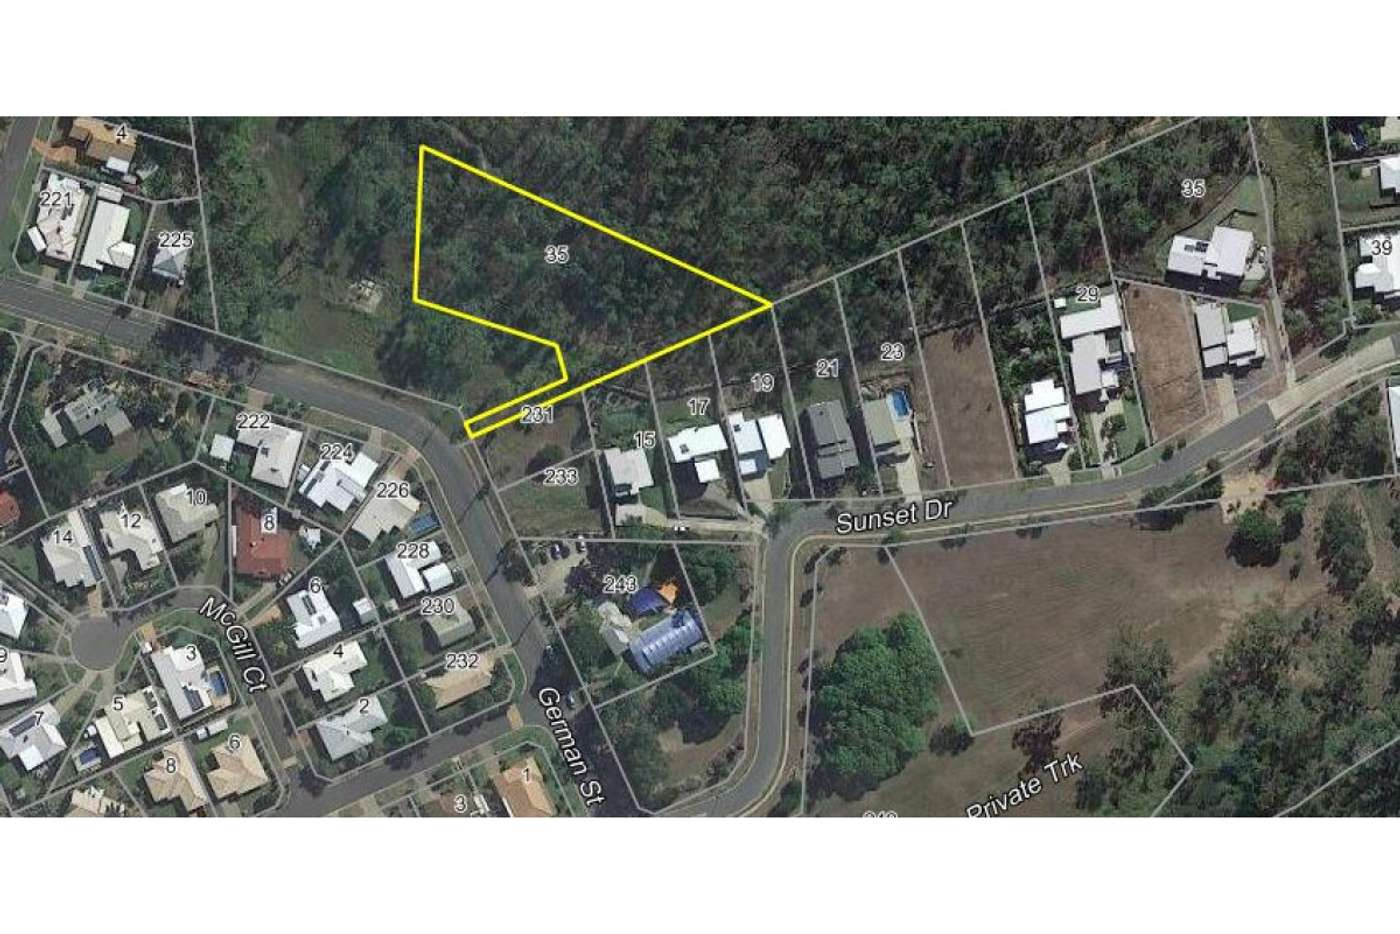 Main view of Homely residentialLand listing, Lot 35 German Street, Norman Gardens QLD 4701